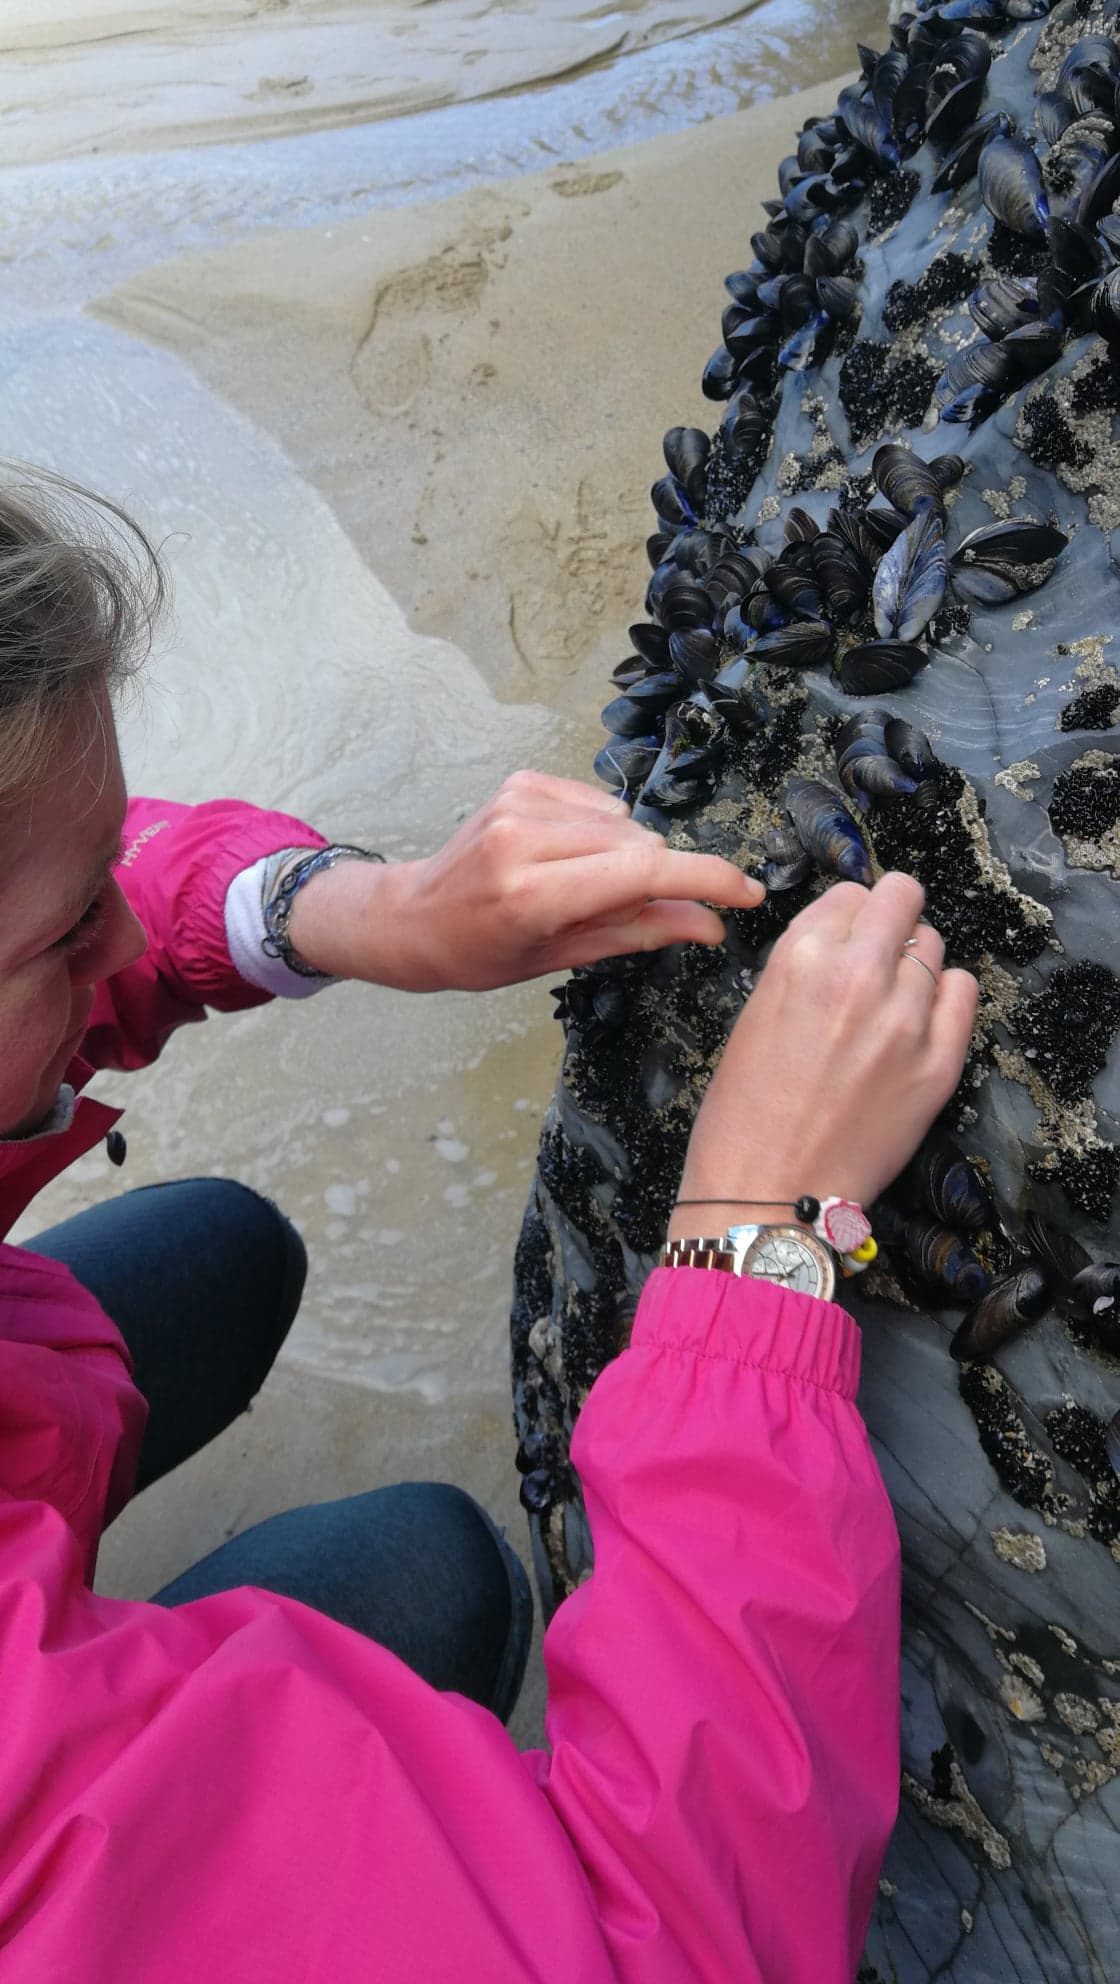 """Plastic is an epidemic, a poison spreading across the world with no antidote"" - <- Image: Attempting to remove fishing line from a mussel bed"